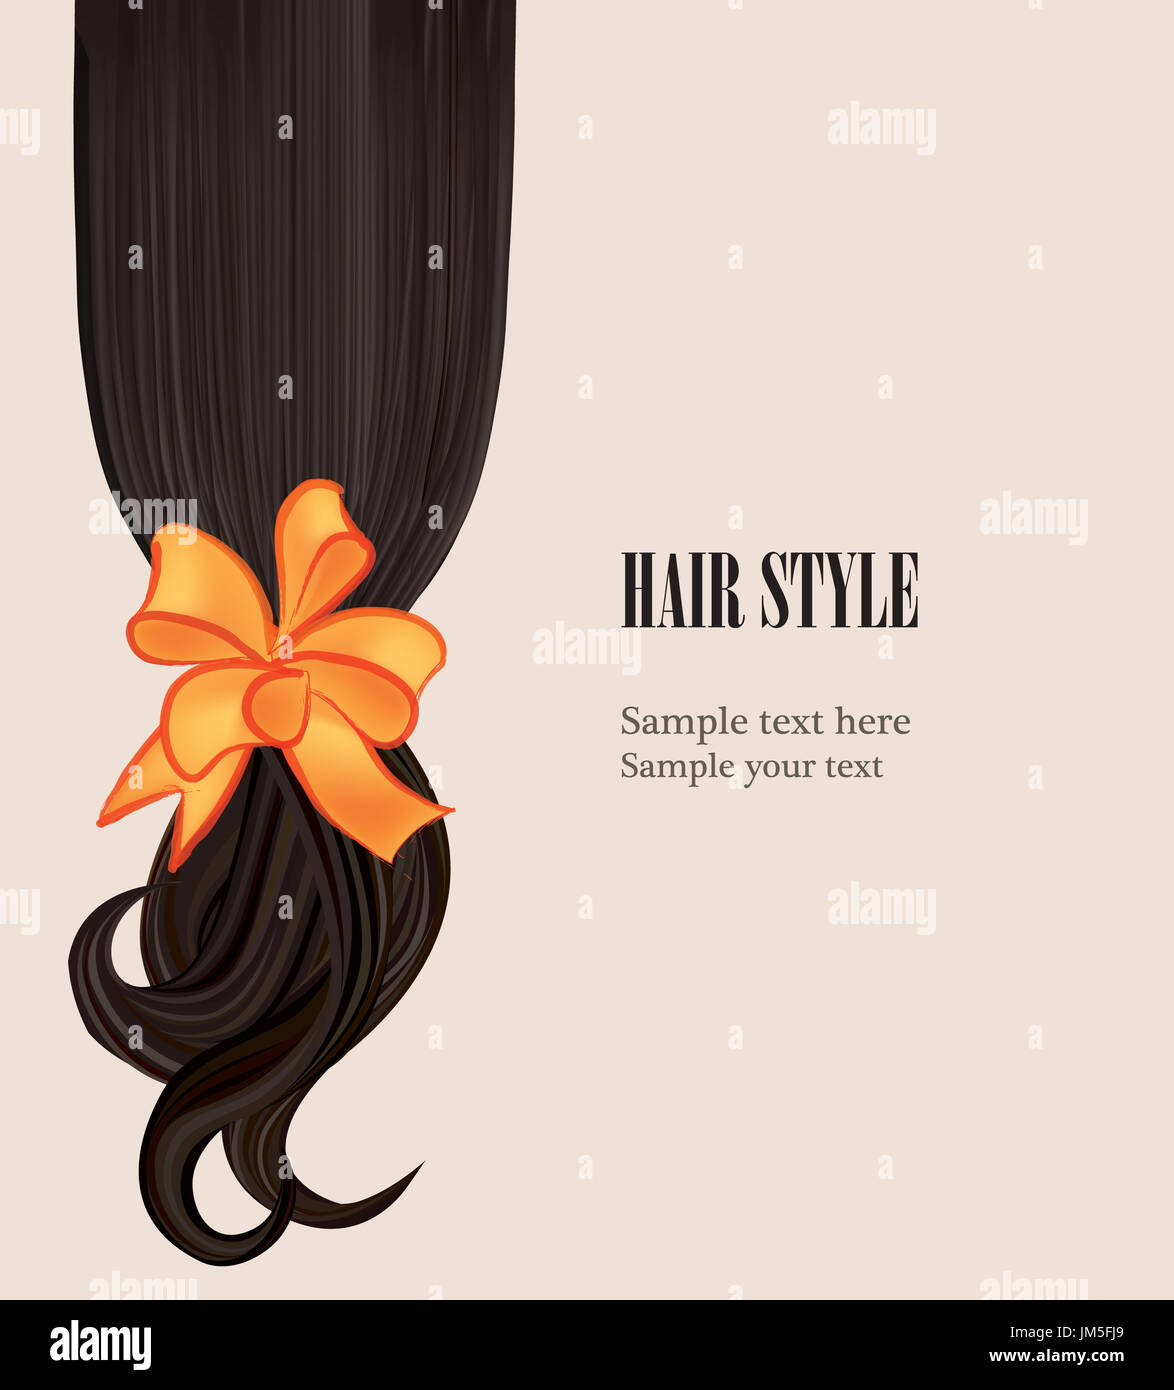 Hair Style Beauty Salon Poster With Curly Black Hairstyle